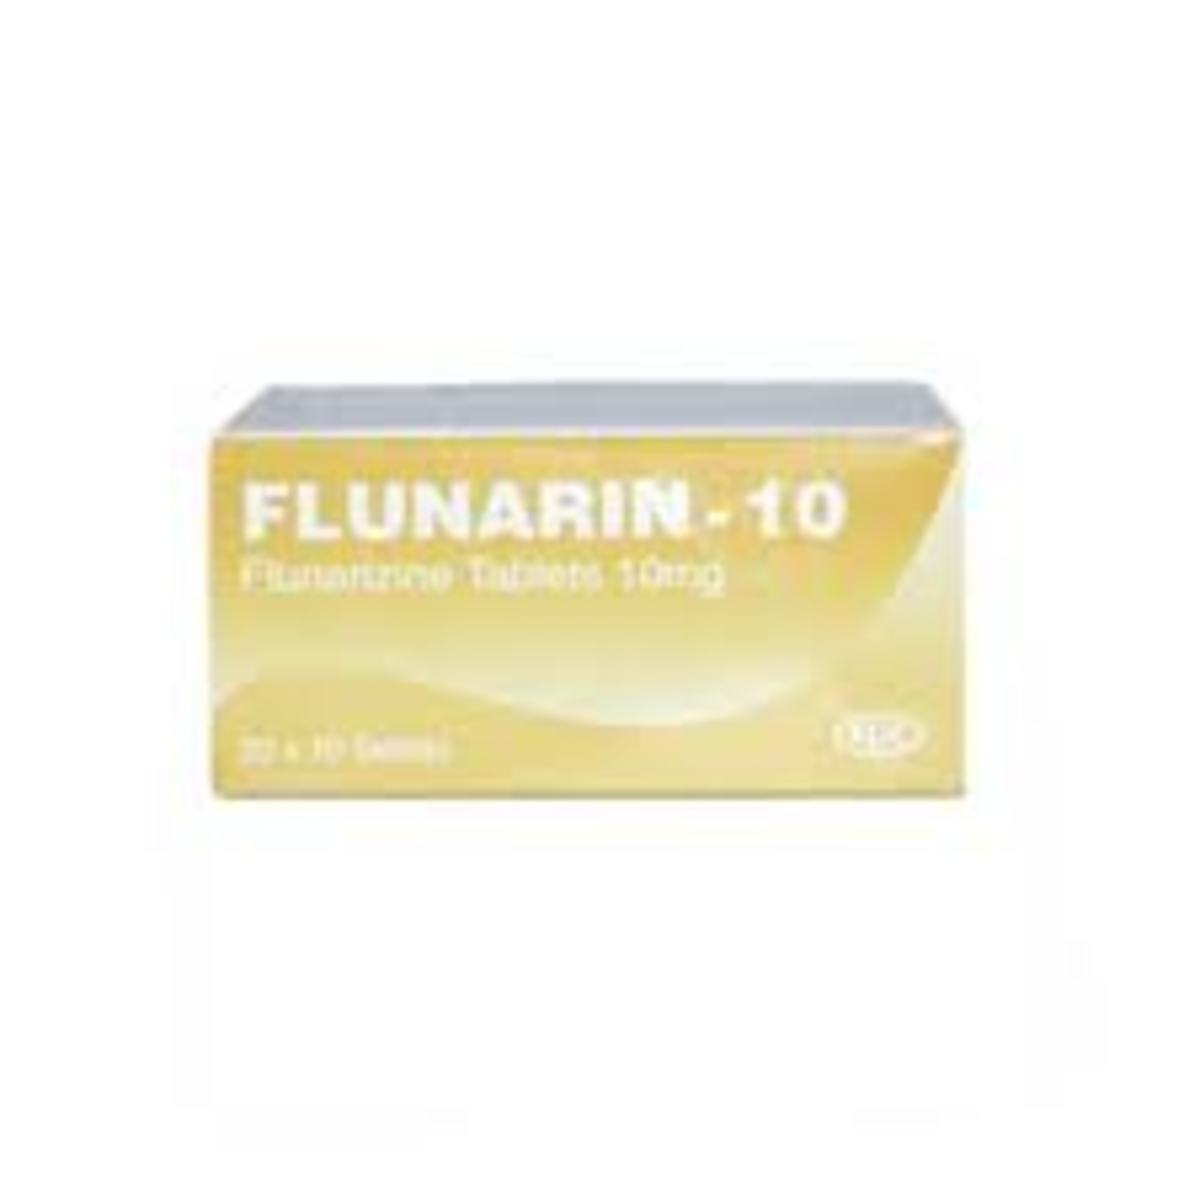 Flunarin box